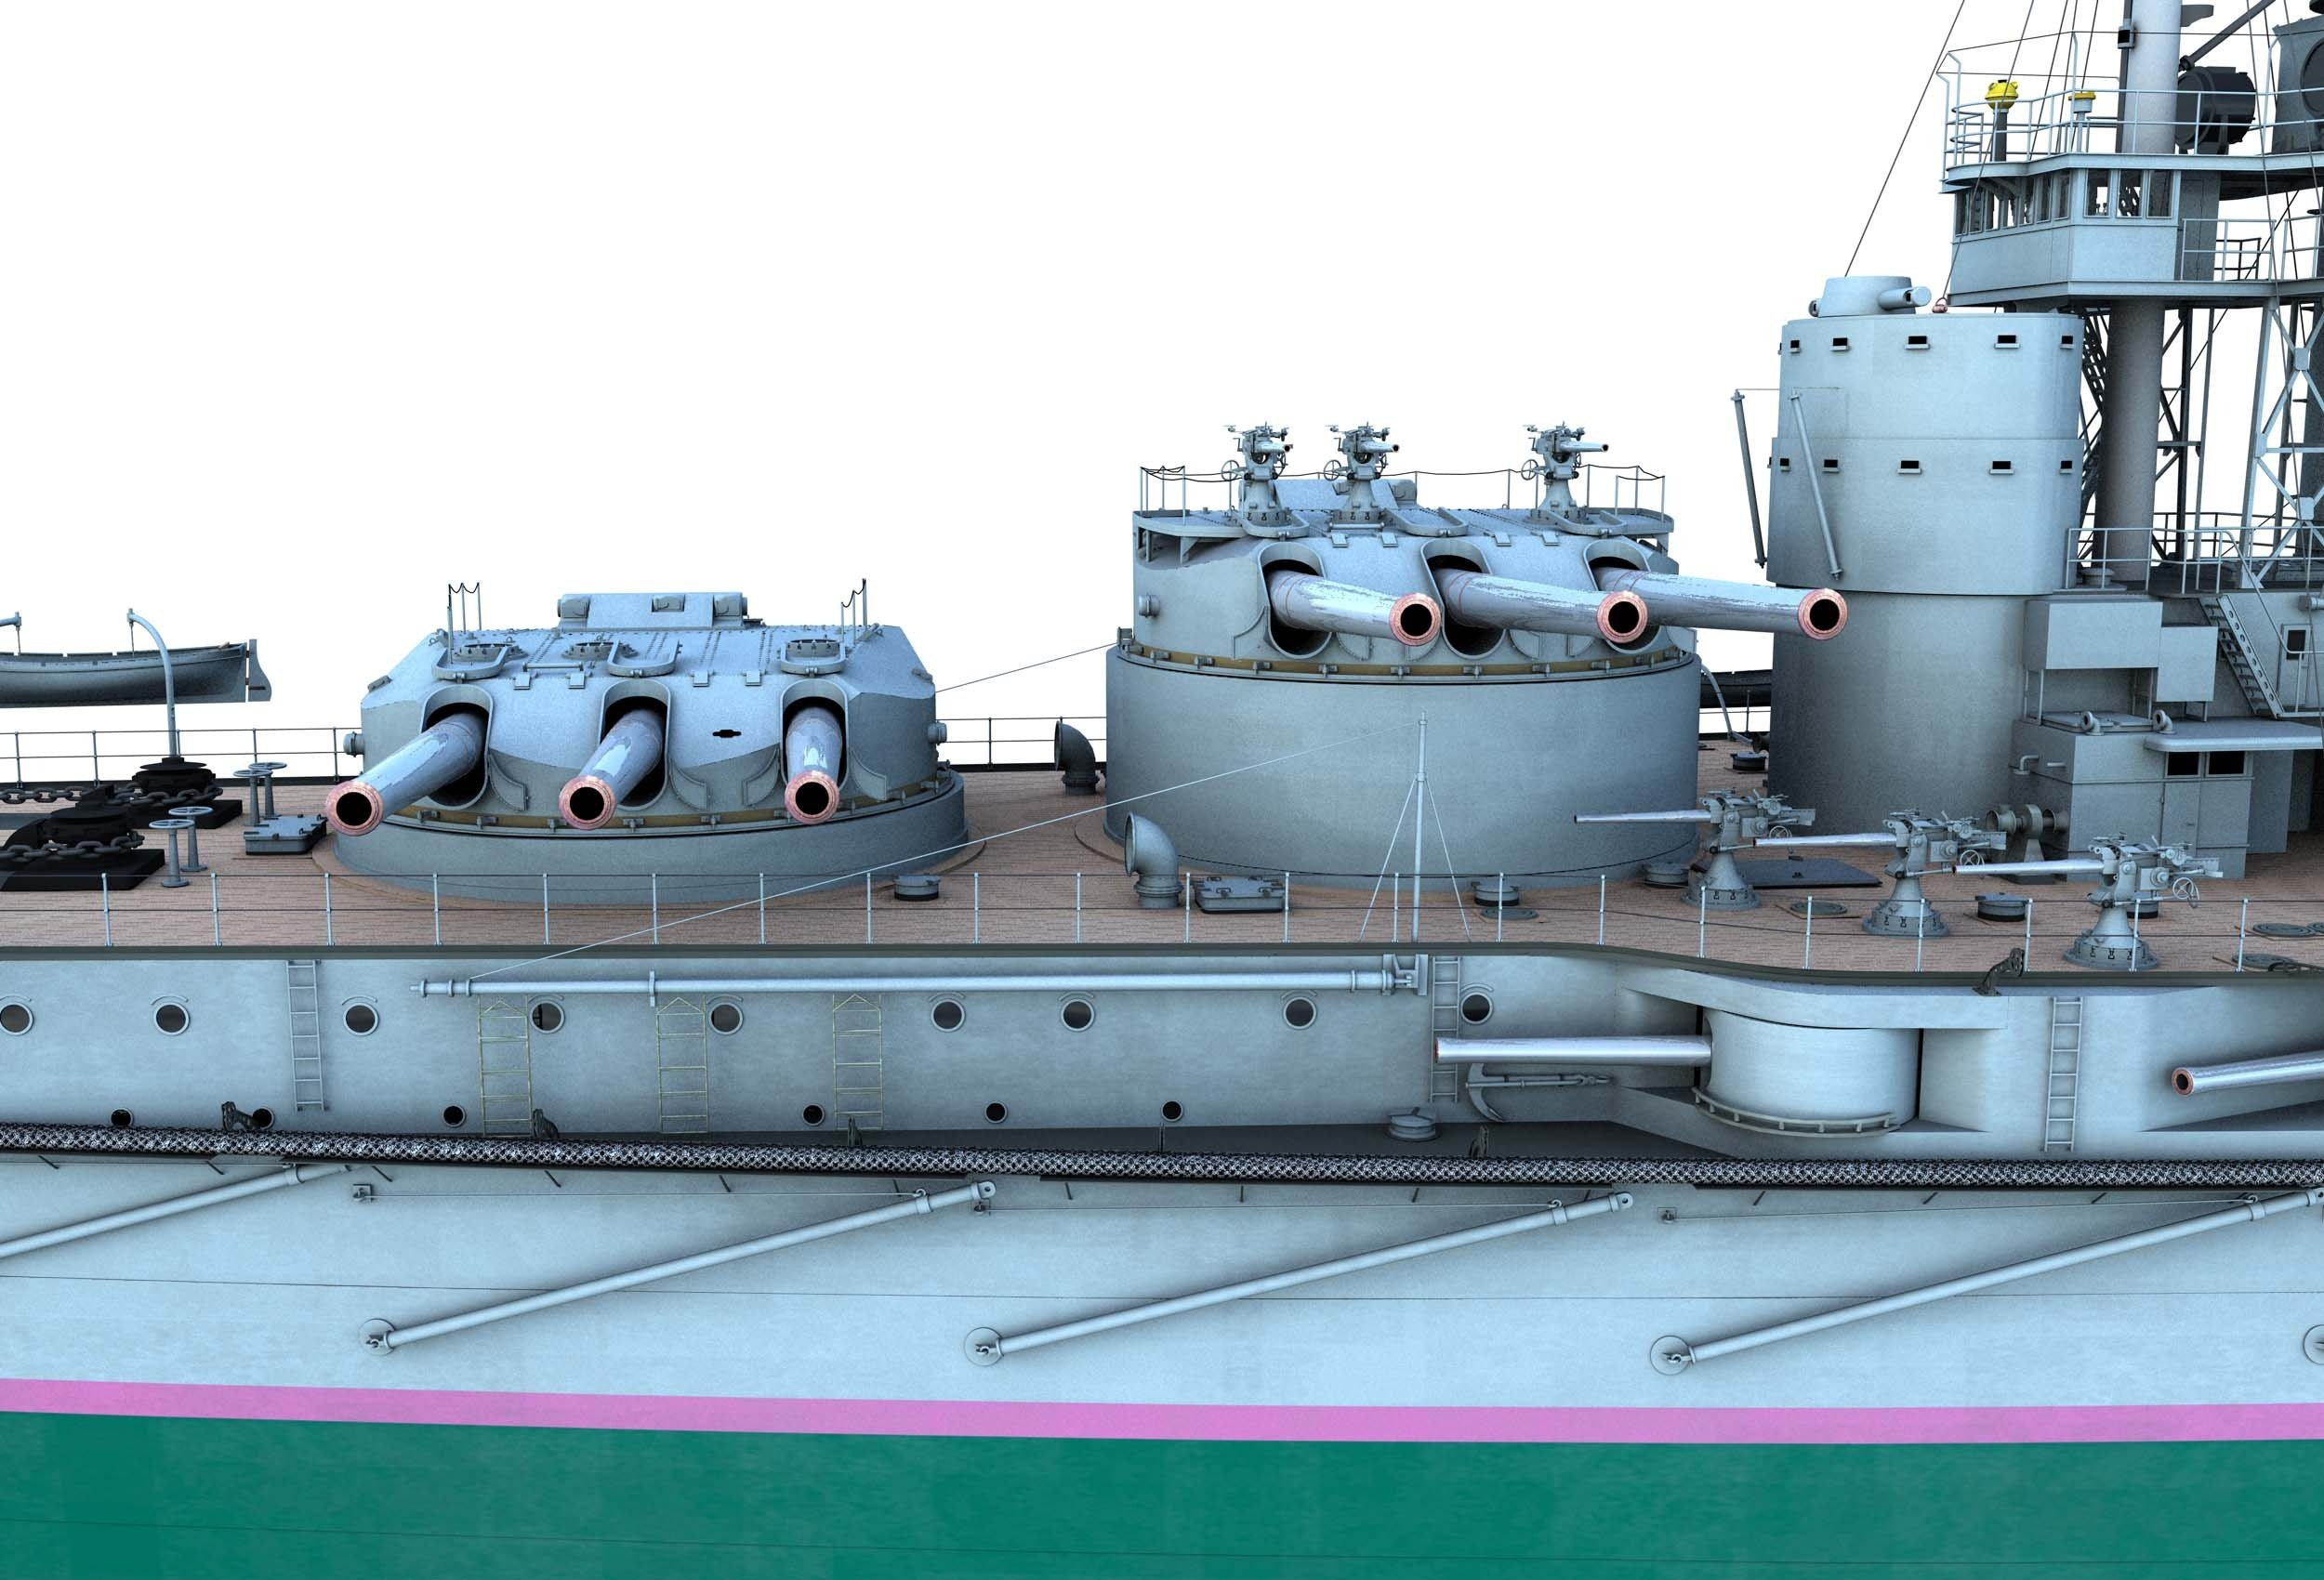 https://0901.nccdn.net/4_2/000/000/024/ec9/CK27-Partial-Ship-Port-Side-Turrets-I-and-II-close-2500x1700.jpg